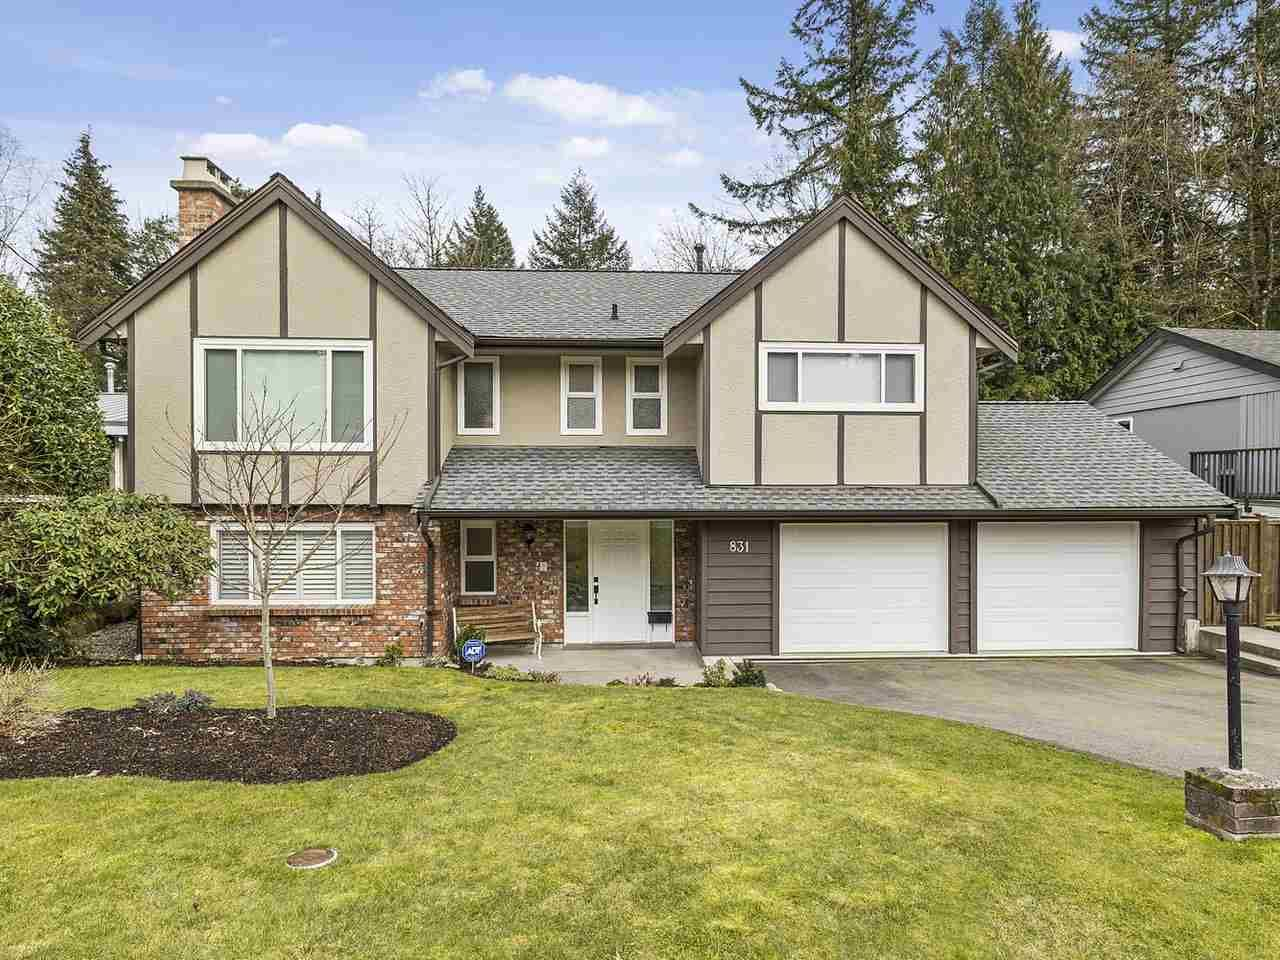 """Main Photo: 831 BAKER Drive in Coquitlam: Chineside House for sale in """"CHINESIDE"""" : MLS®# R2543641"""